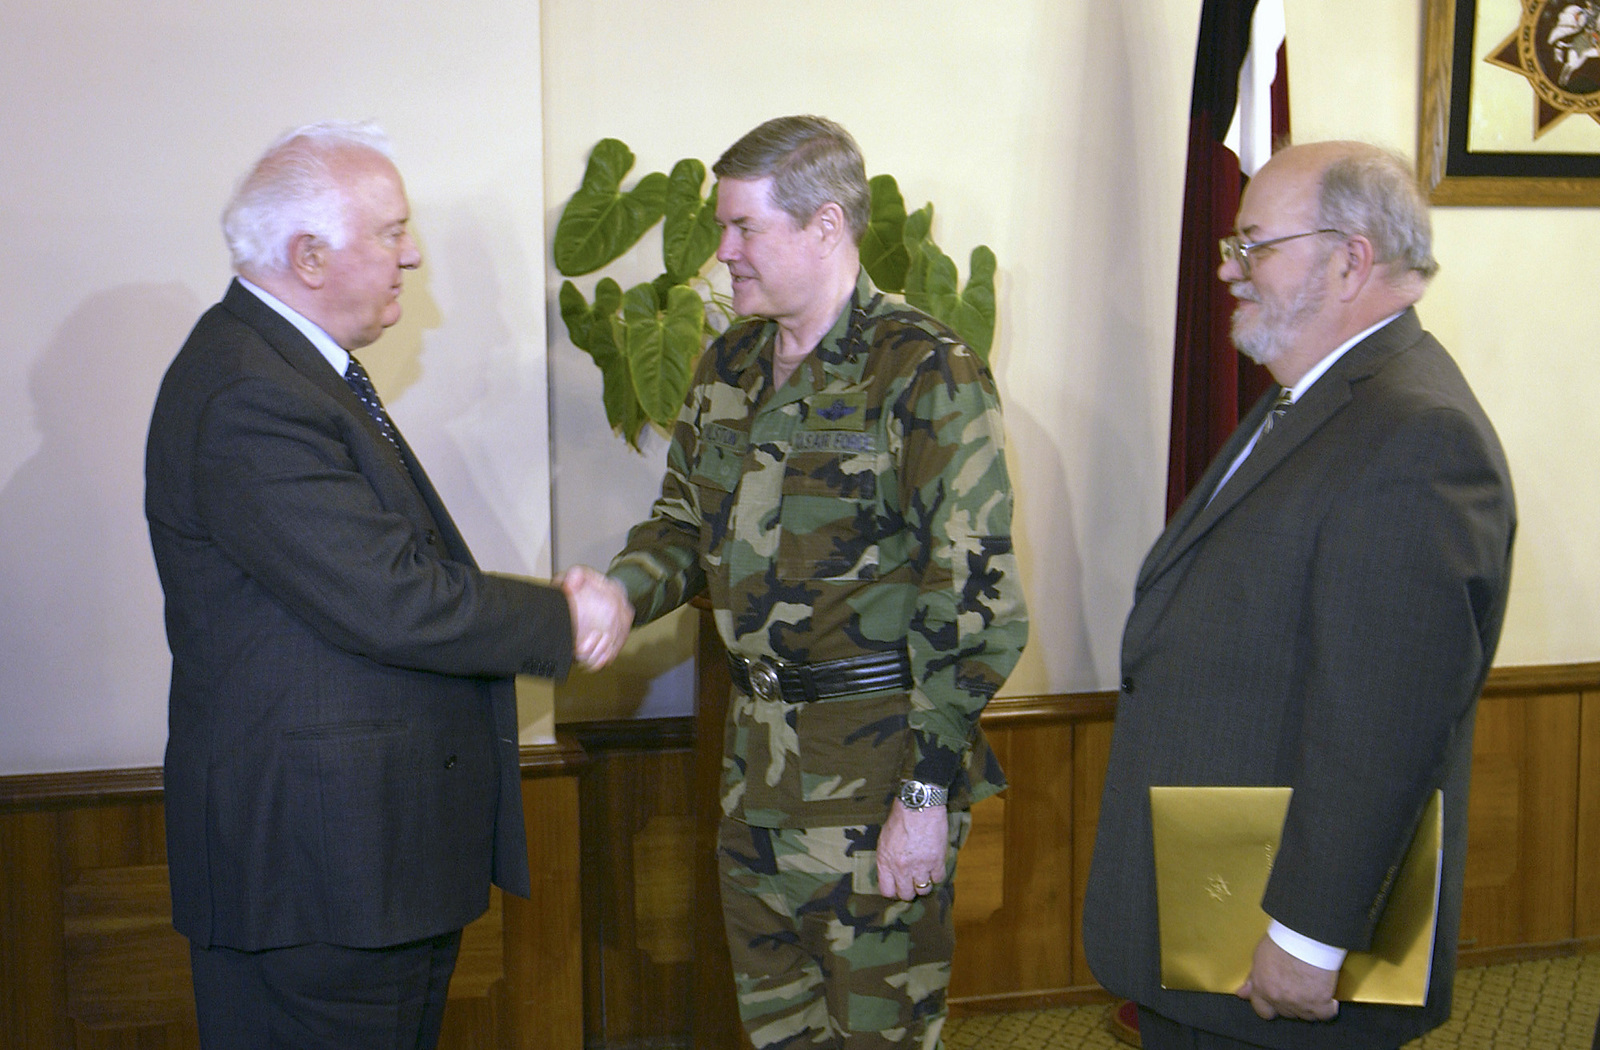 Georgian President Eduard Shevardnadze (left) greets US Air Force (USAF) General Joseph W. Ralston (center), Commander in CHIEF, Unites States European Command (USEUCOM) and Supreme Allied Commander of Europe, National Atlantic Treaty Organization (NATO), during GEN Ralstons visit to Tbilisi, Georgia, to discuss the Georgia Train and Equip Program (GTEP). GTEP conducted by US Special Operations Command, Europe, is designed to enhance the capability of selected Georgian military units to provide security and stability to the citizens of Georgia and the region